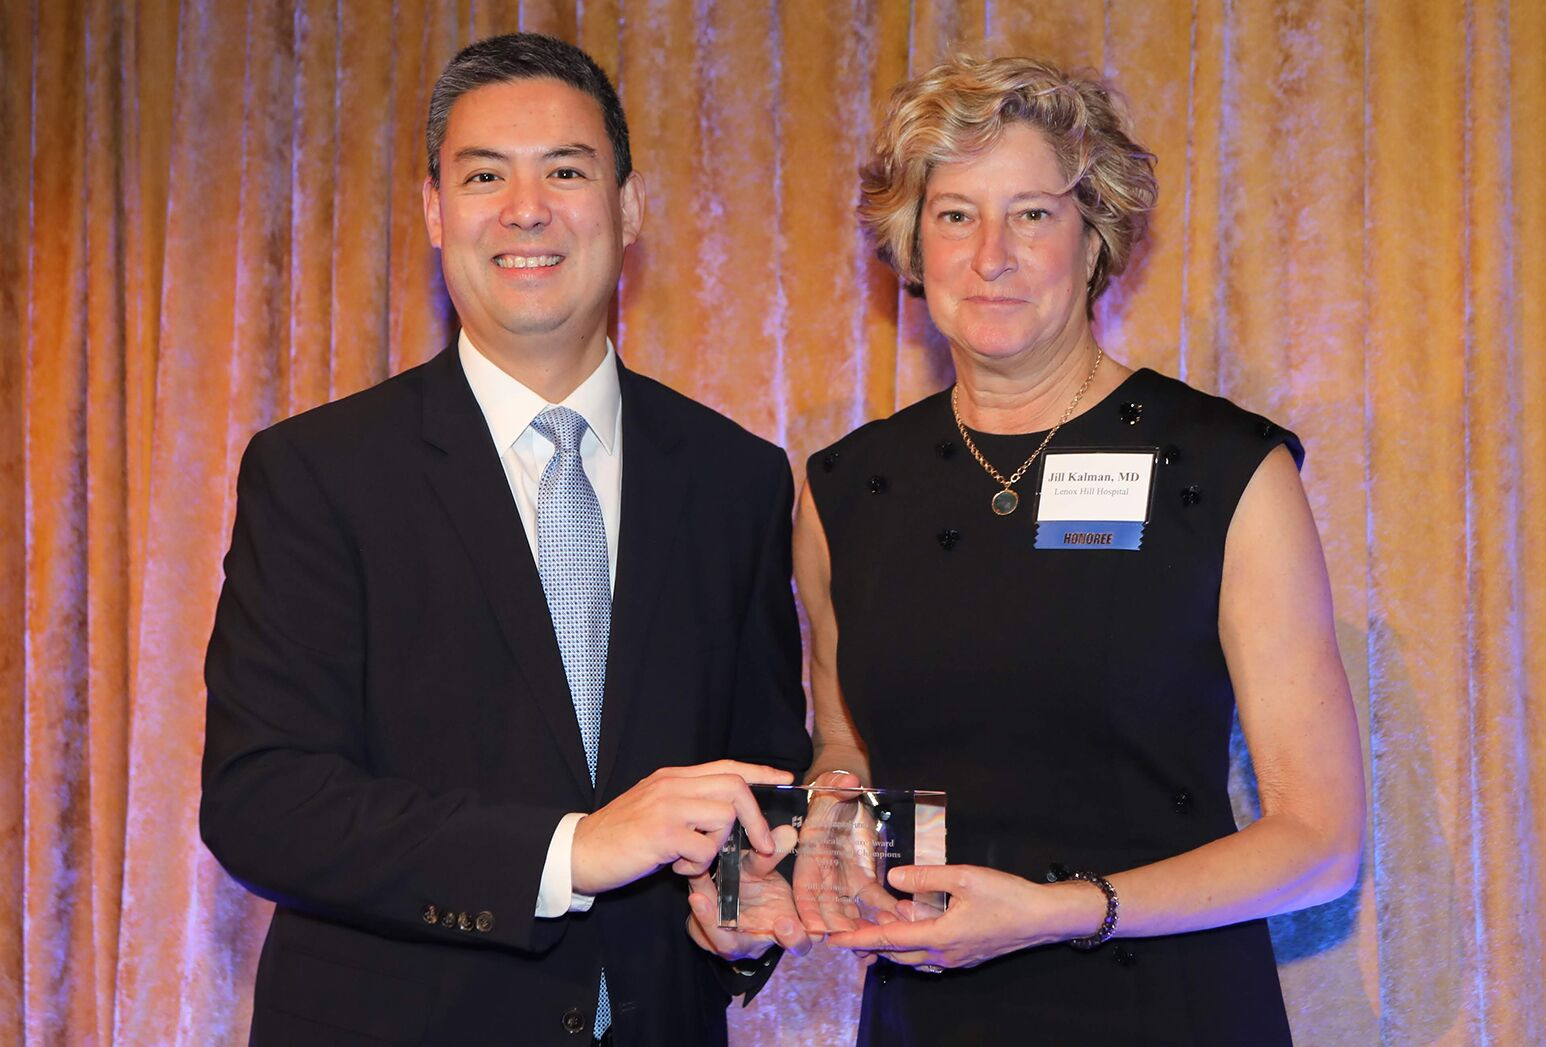 Jill Kalman, MD, executive director of Lenox Hill Hospital, receives the United Hospital Fund award.